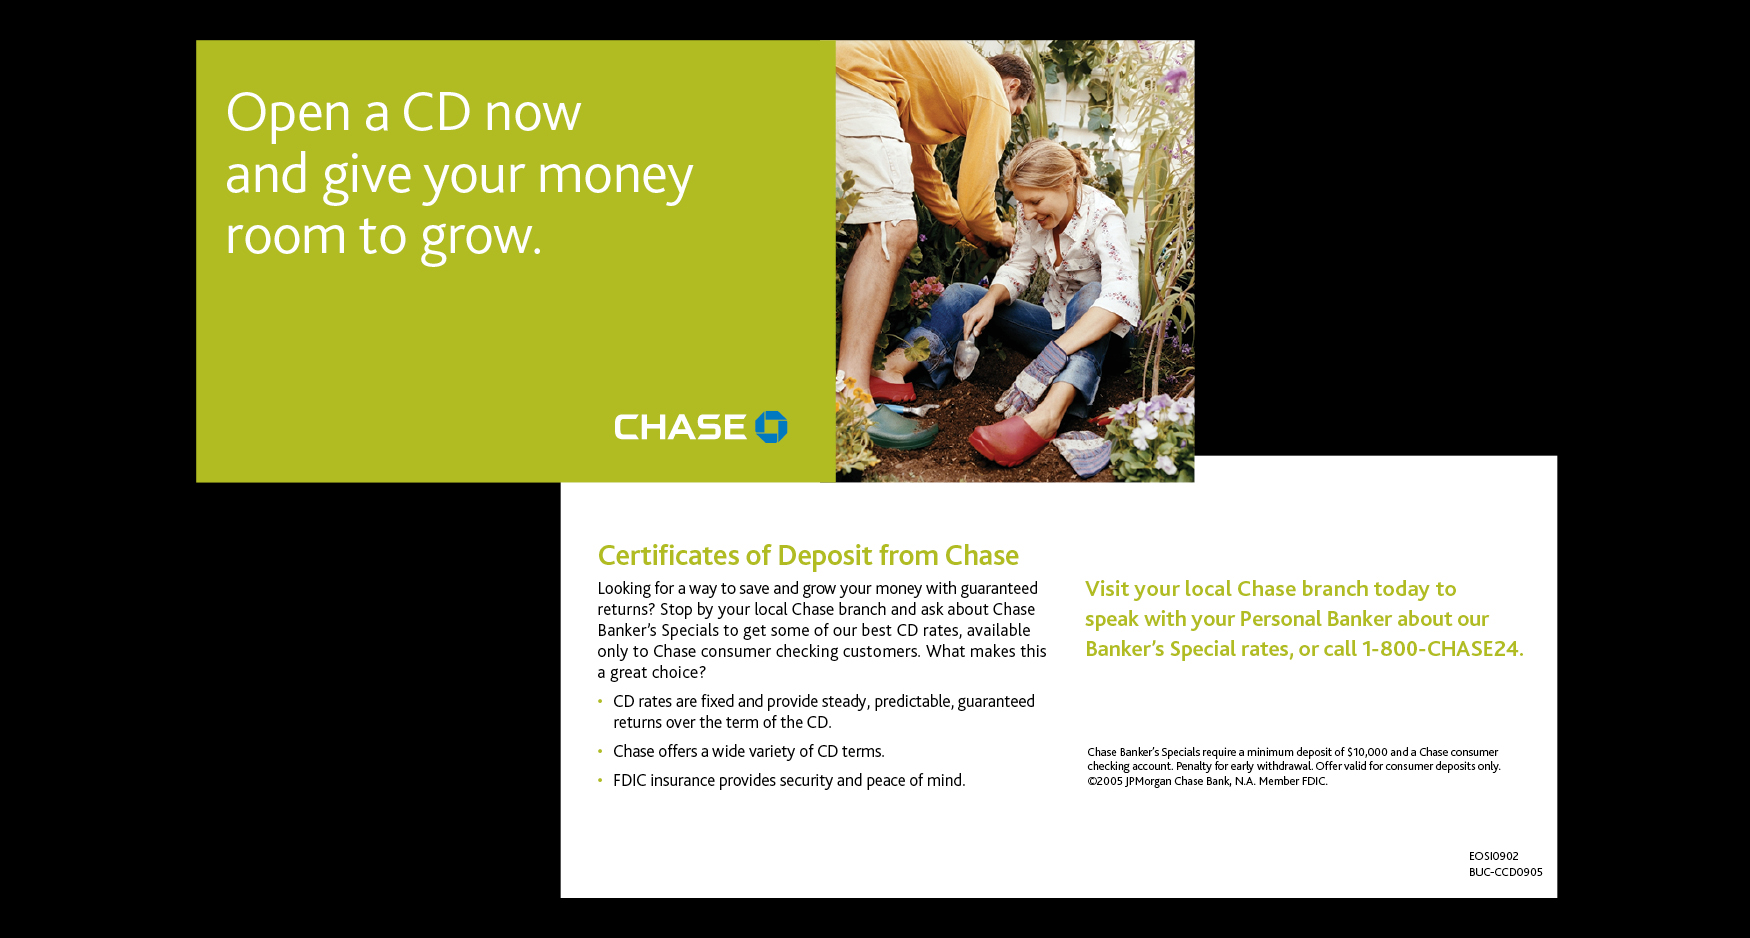 BP Large Website Images55 - JPMORGAN CHASE - DIRECT MARKETING